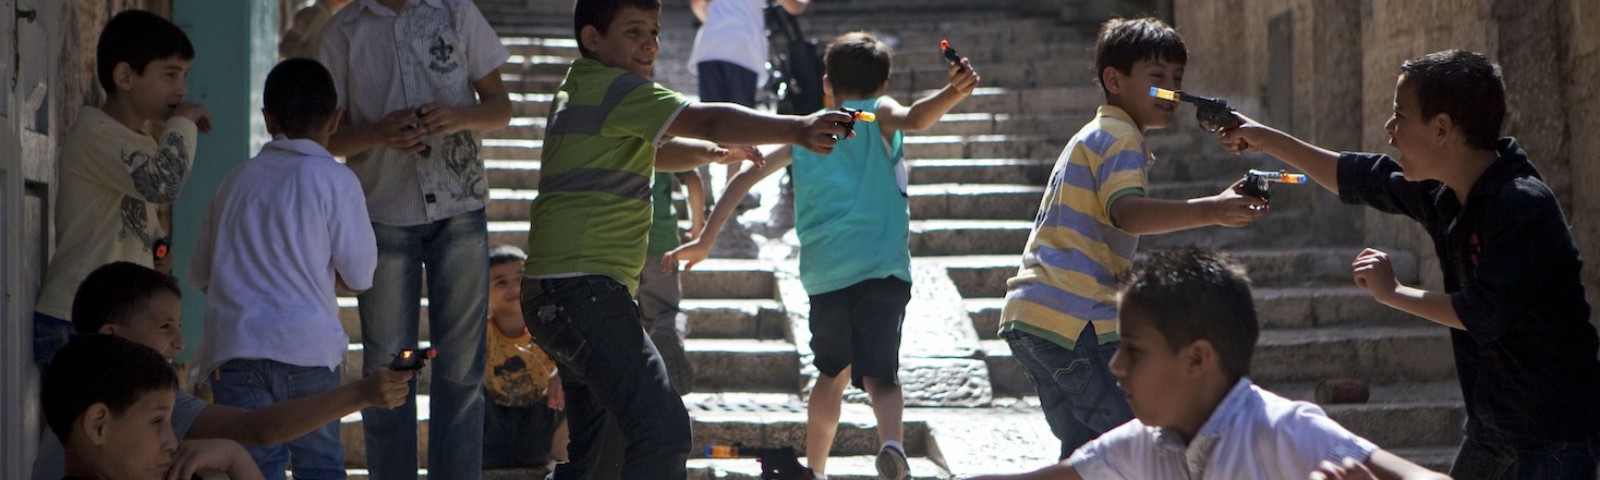 Children play in an Israeli street. Photo Credit: